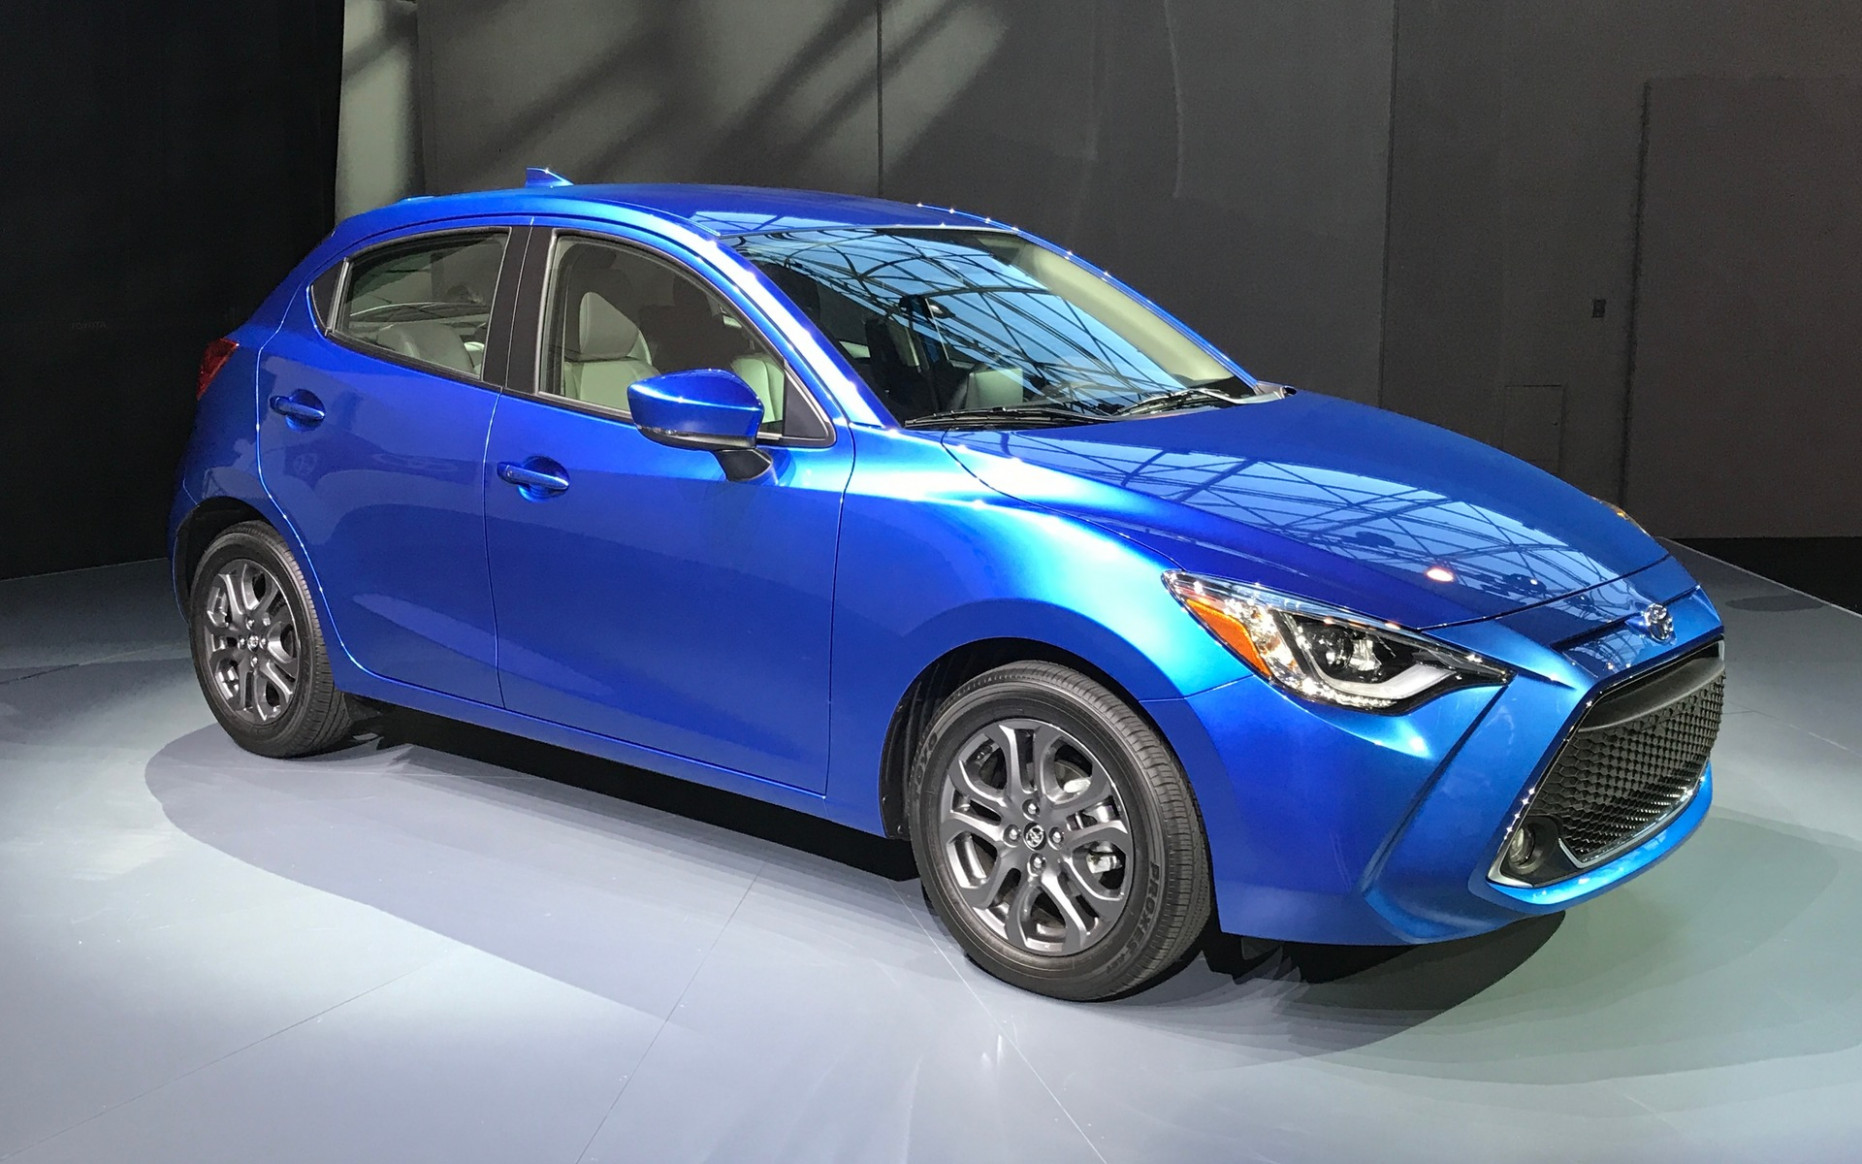 9 Toyota Yaris Hatchback Makes Official Debut in New York - The ...